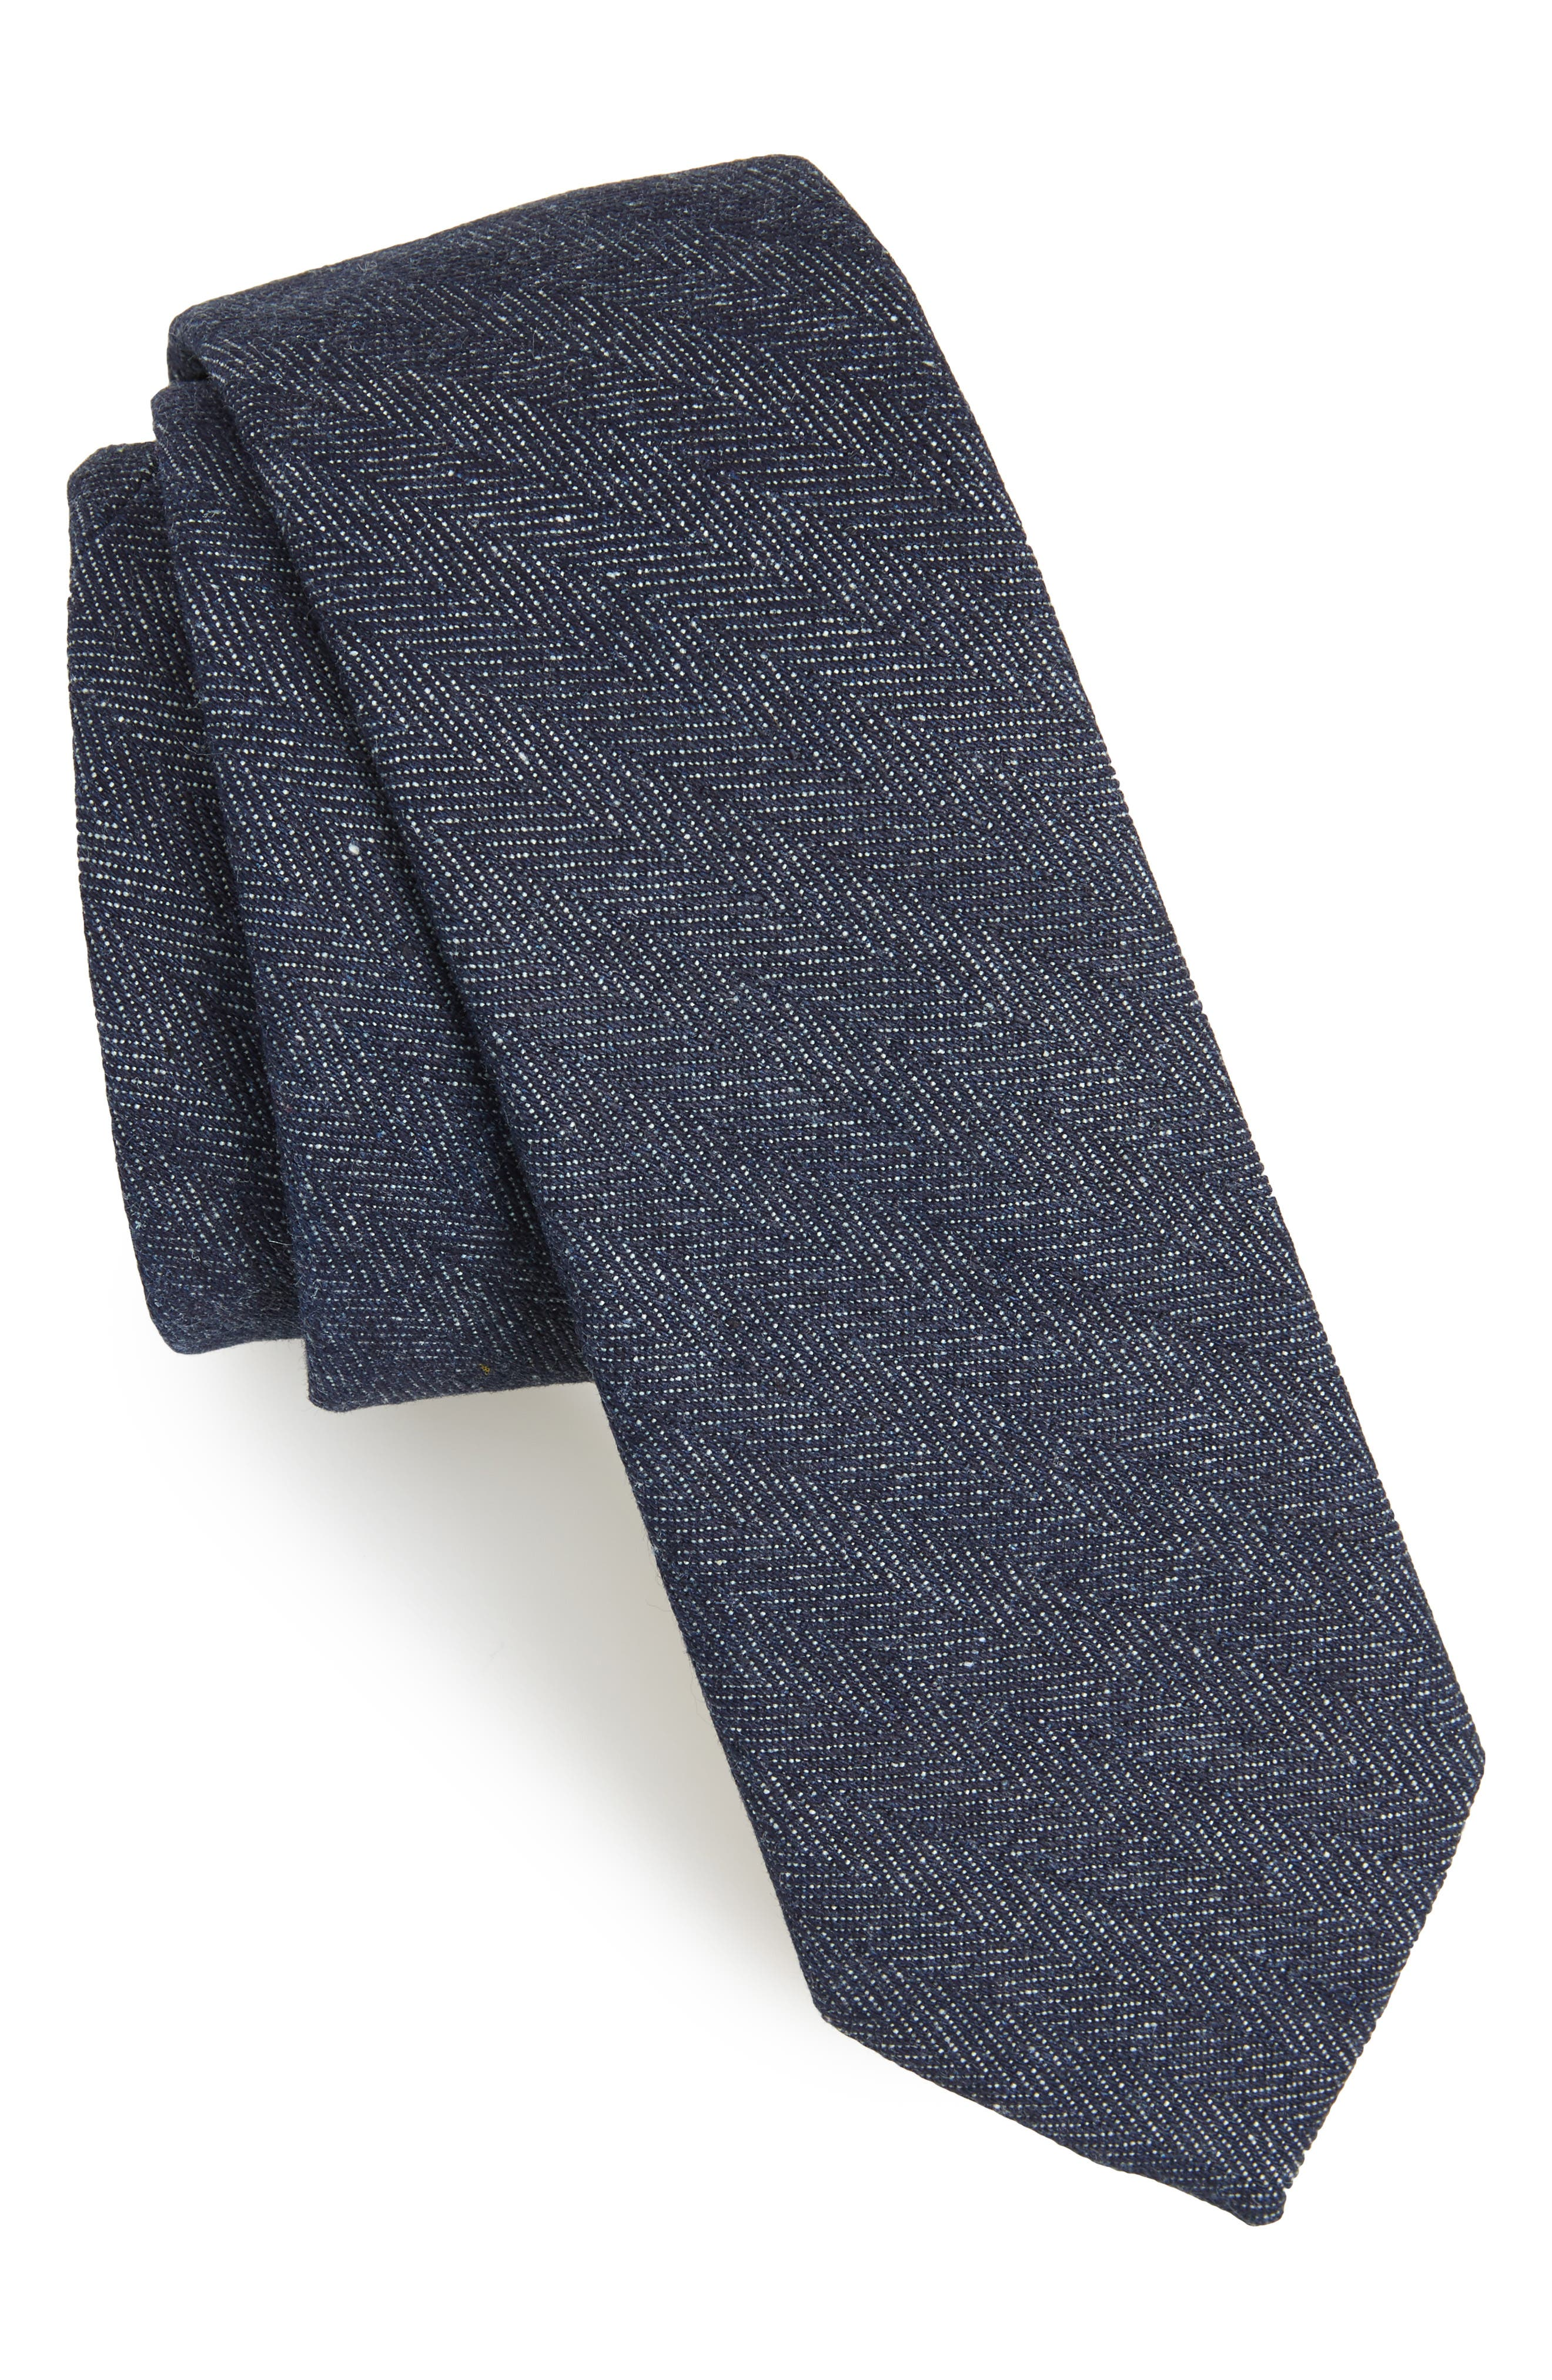 Thames Solid Skinny Tie,                         Main,                         color, 410